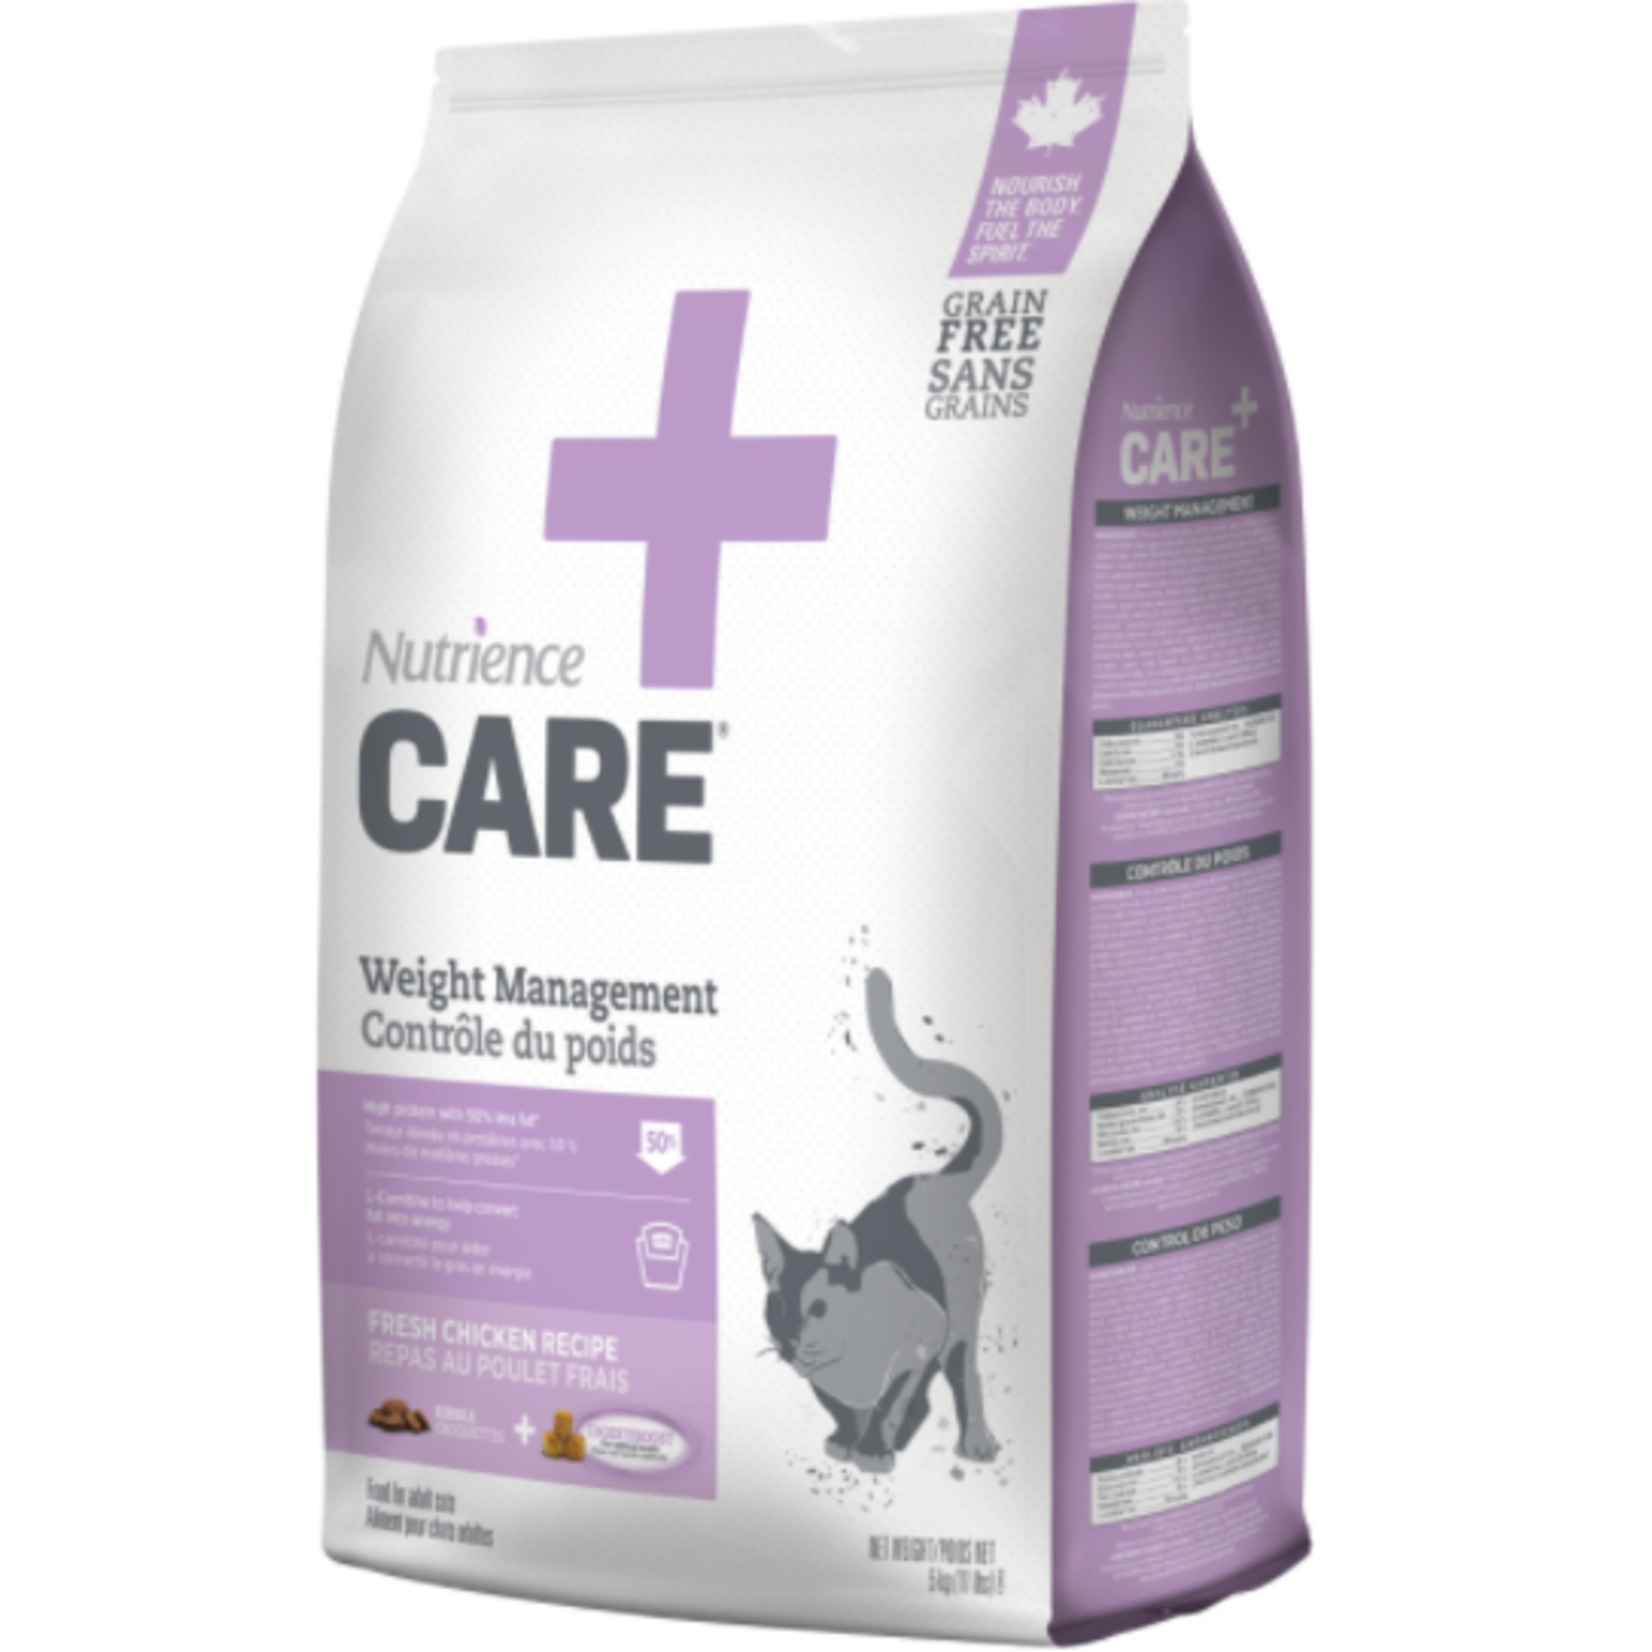 nutrience Care Weight Management for Cats - 5 kg (11 lbs)-Dry food